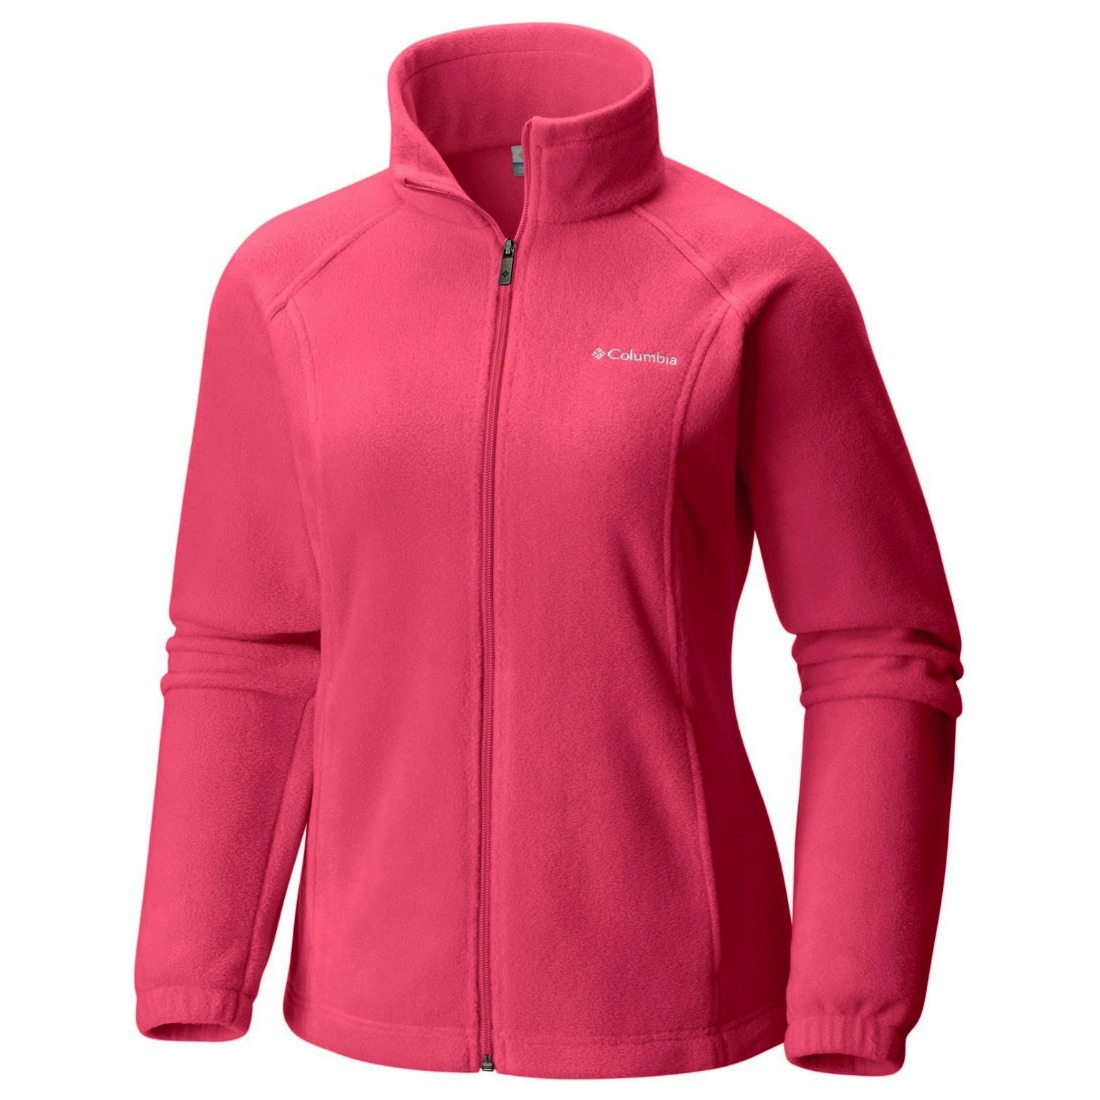 Columbia New Women's Winter Fleece Jacket